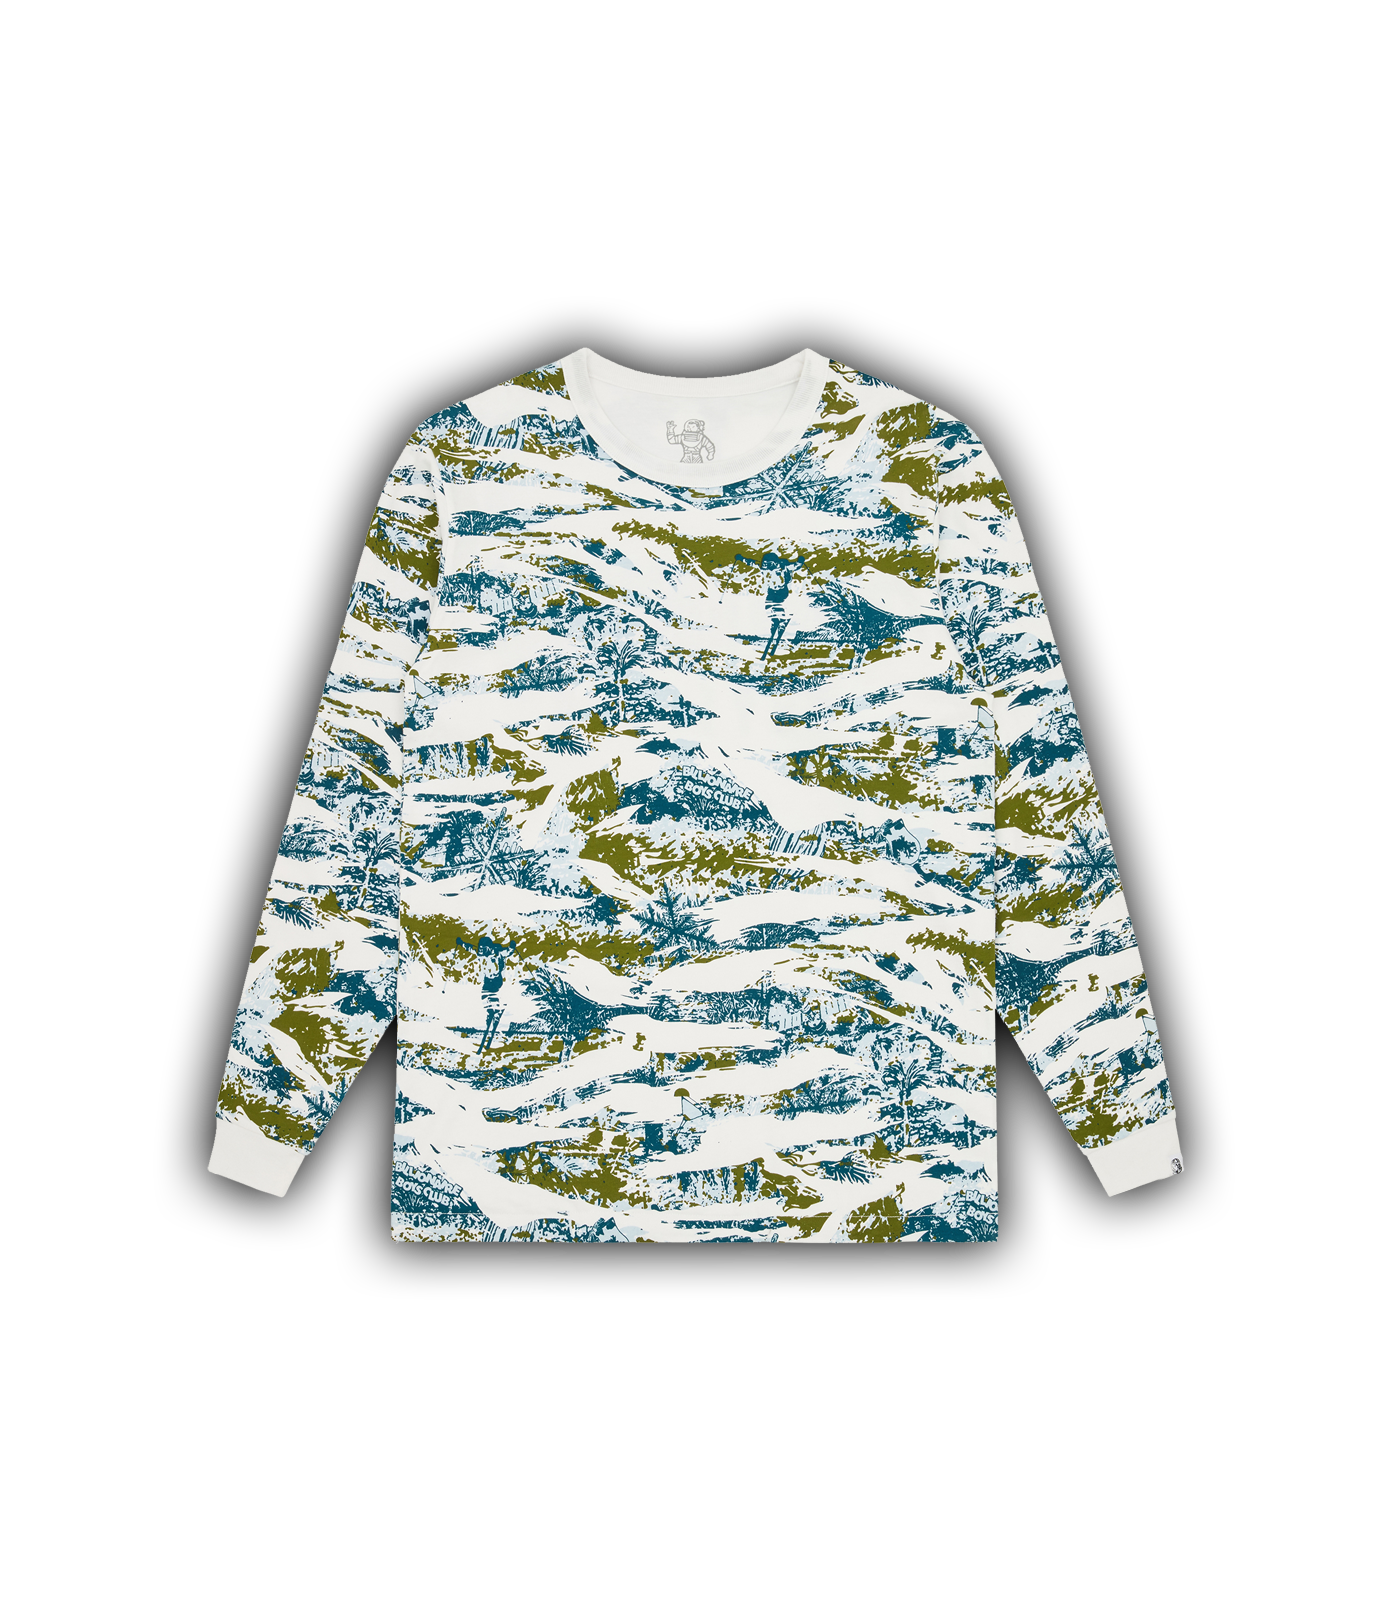 REVERSIBLE CAMO L/S T-SHIRT - WHITE/TEAL